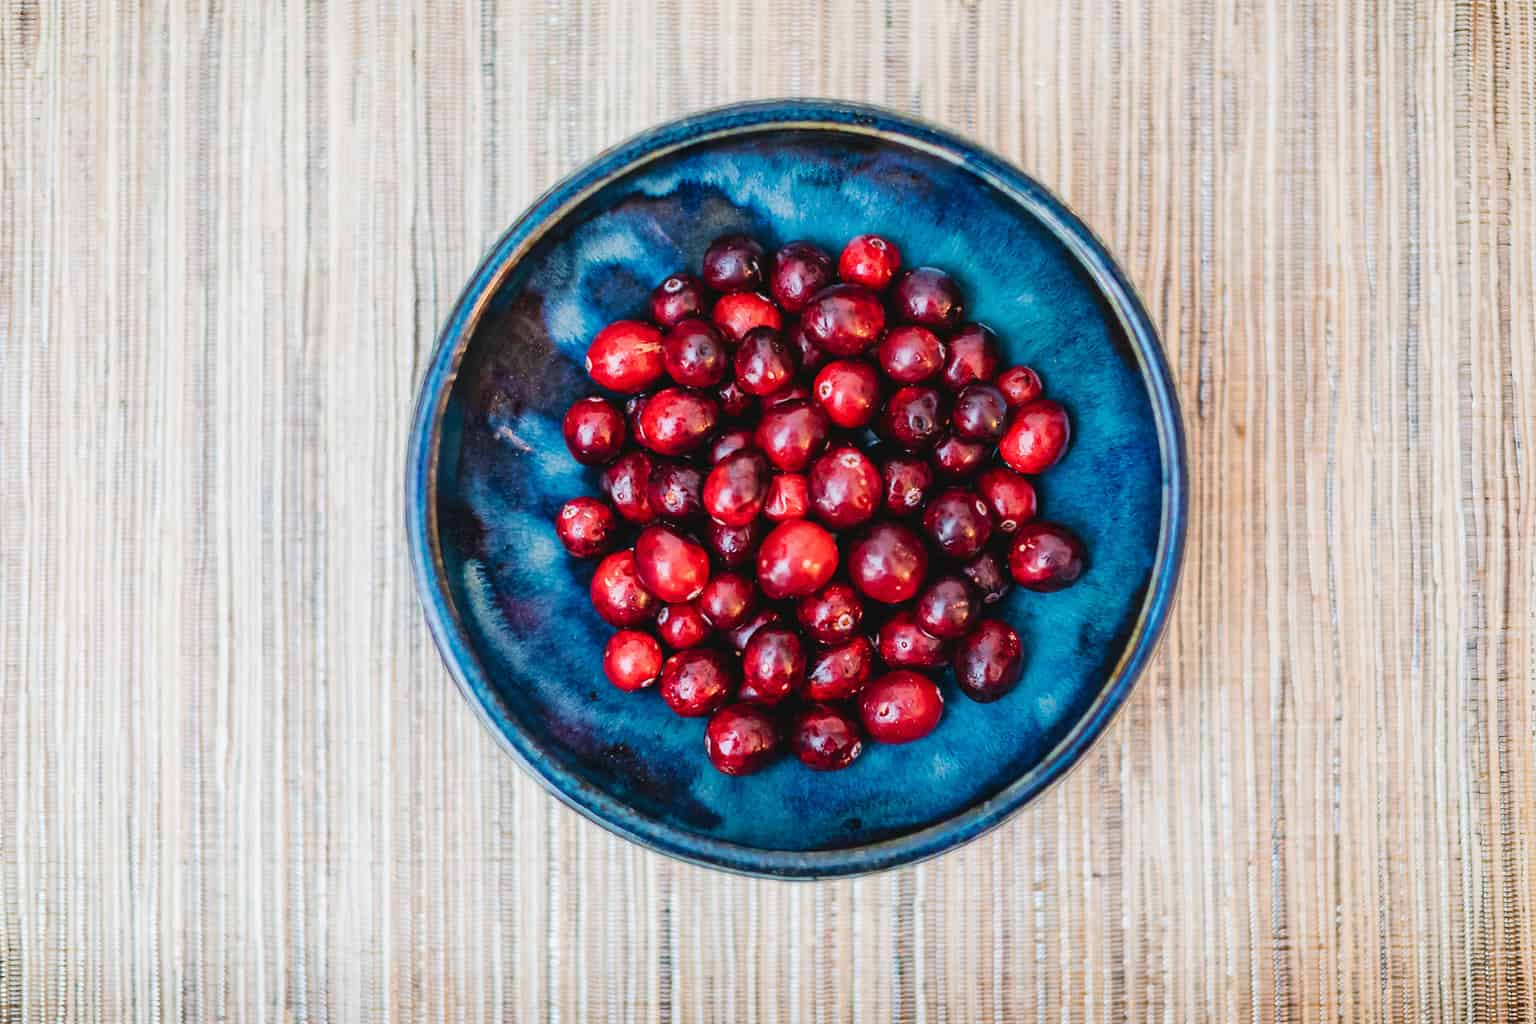 Ripe red cranberries in a blue bowl